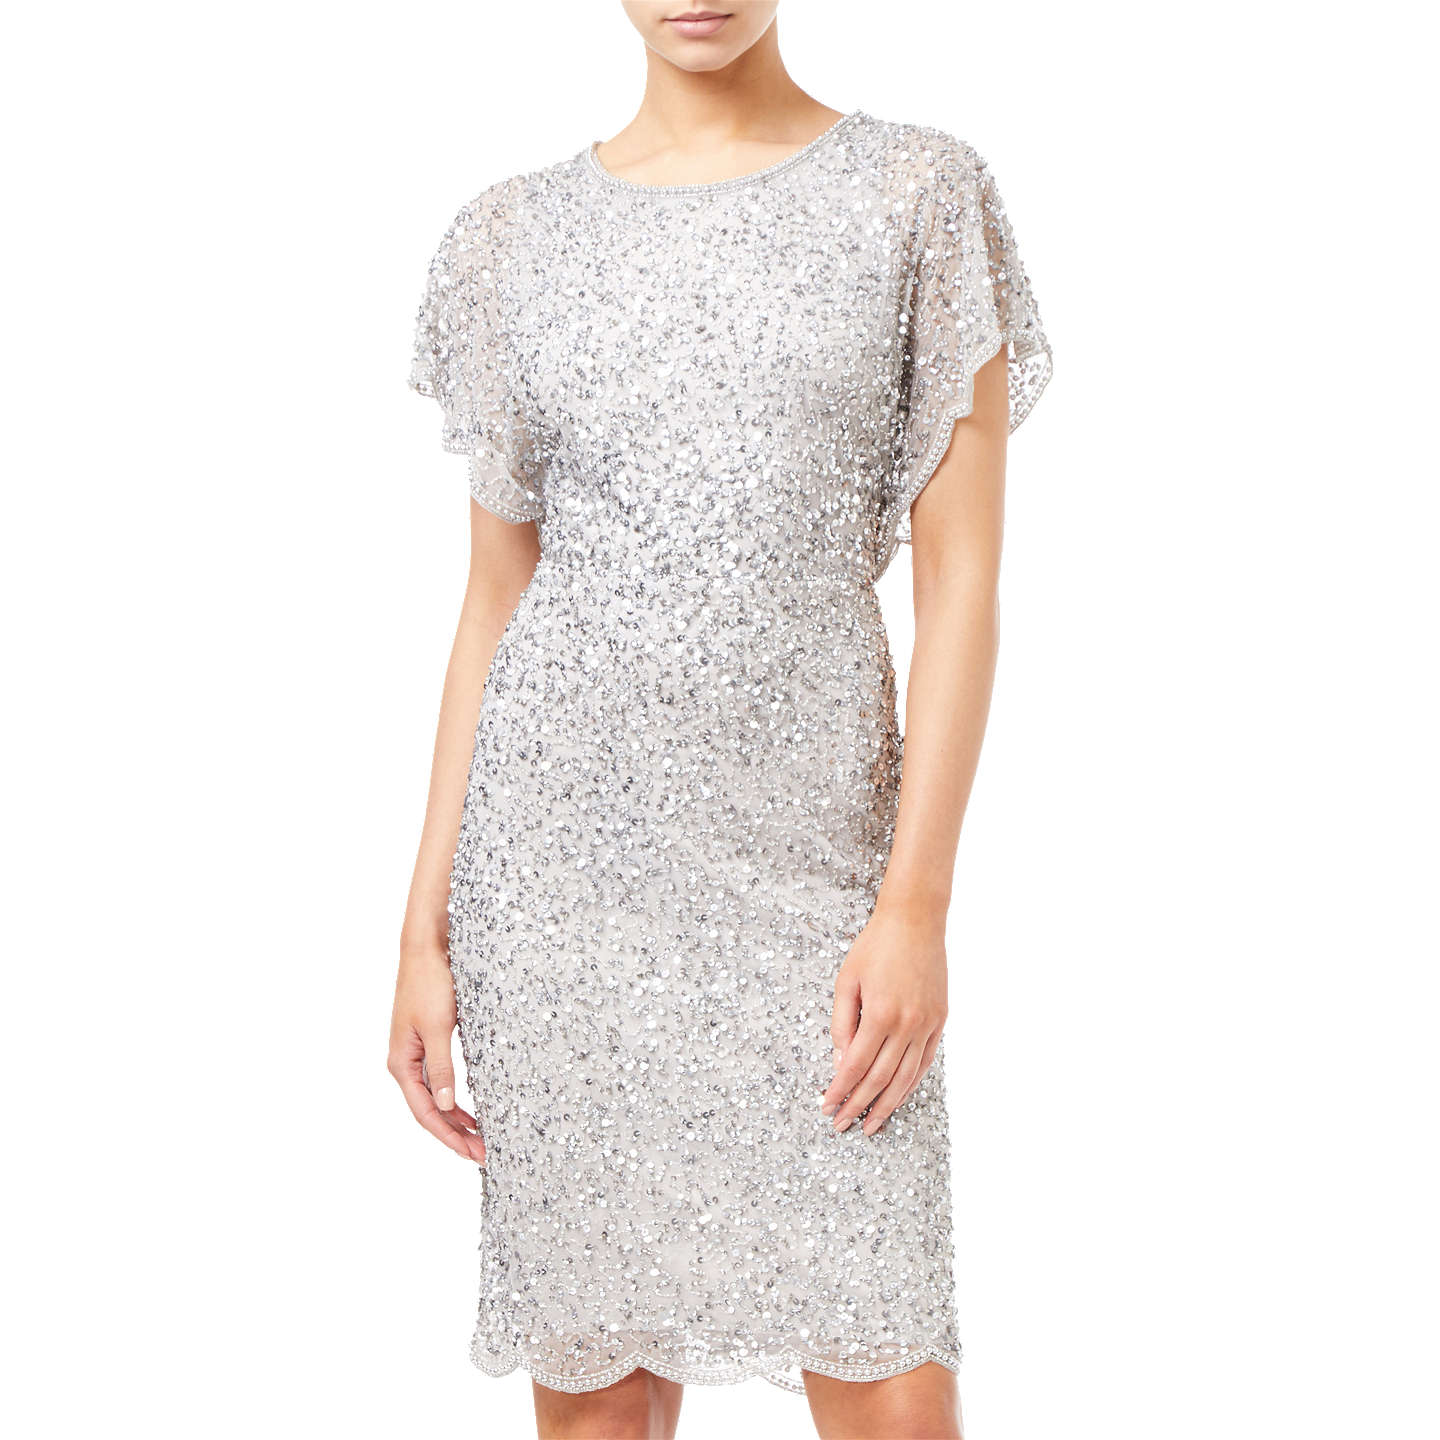 Adrianna Papell Flutter Sleeve Beaded Dress, Silver at John Lewis